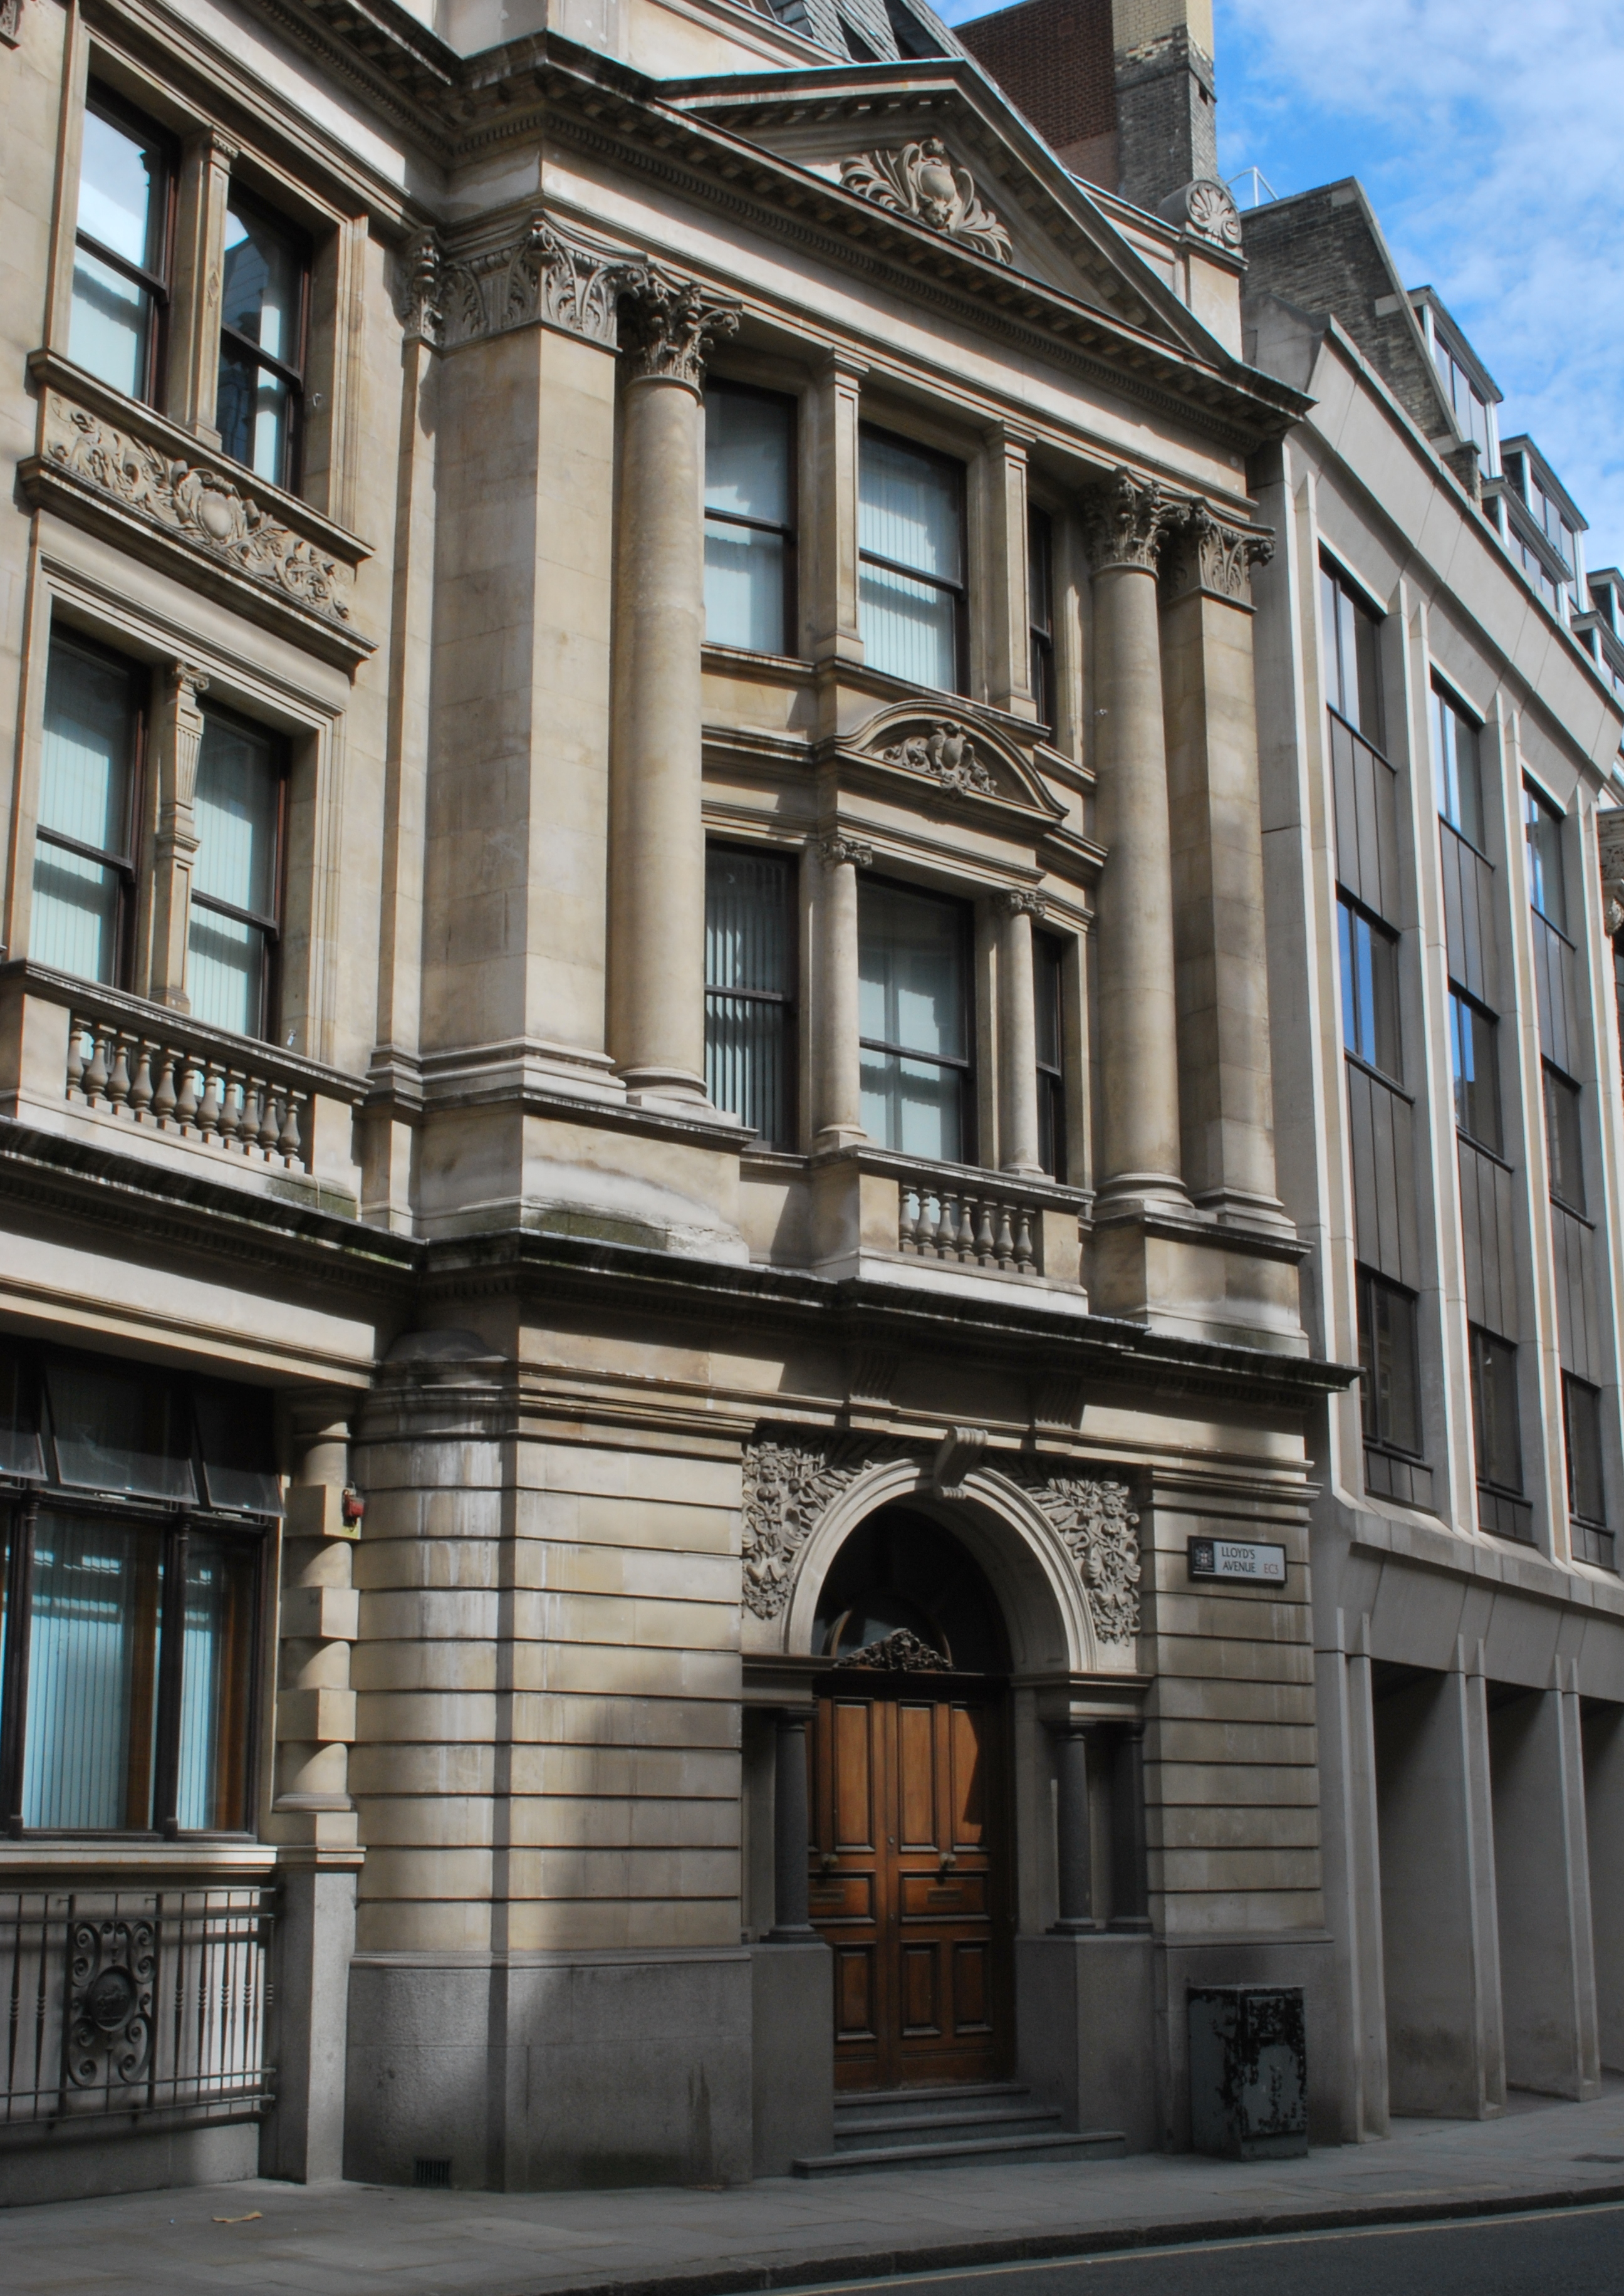 The outwardly-angled bay at the southern end of the Lloyd's Avenue facade